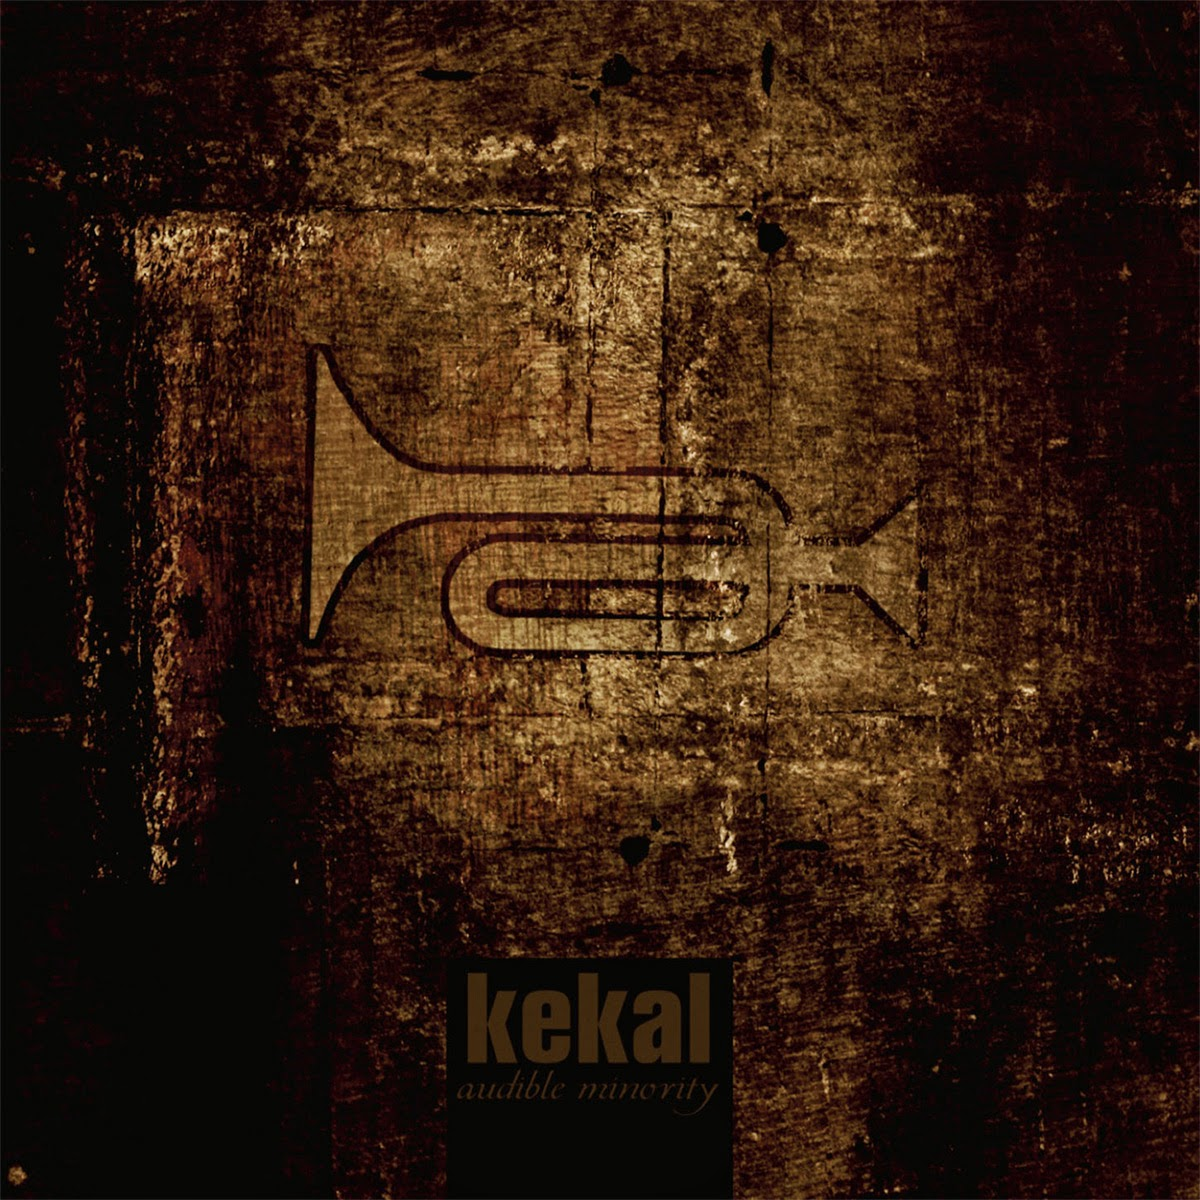 Kekal - Audible Minority